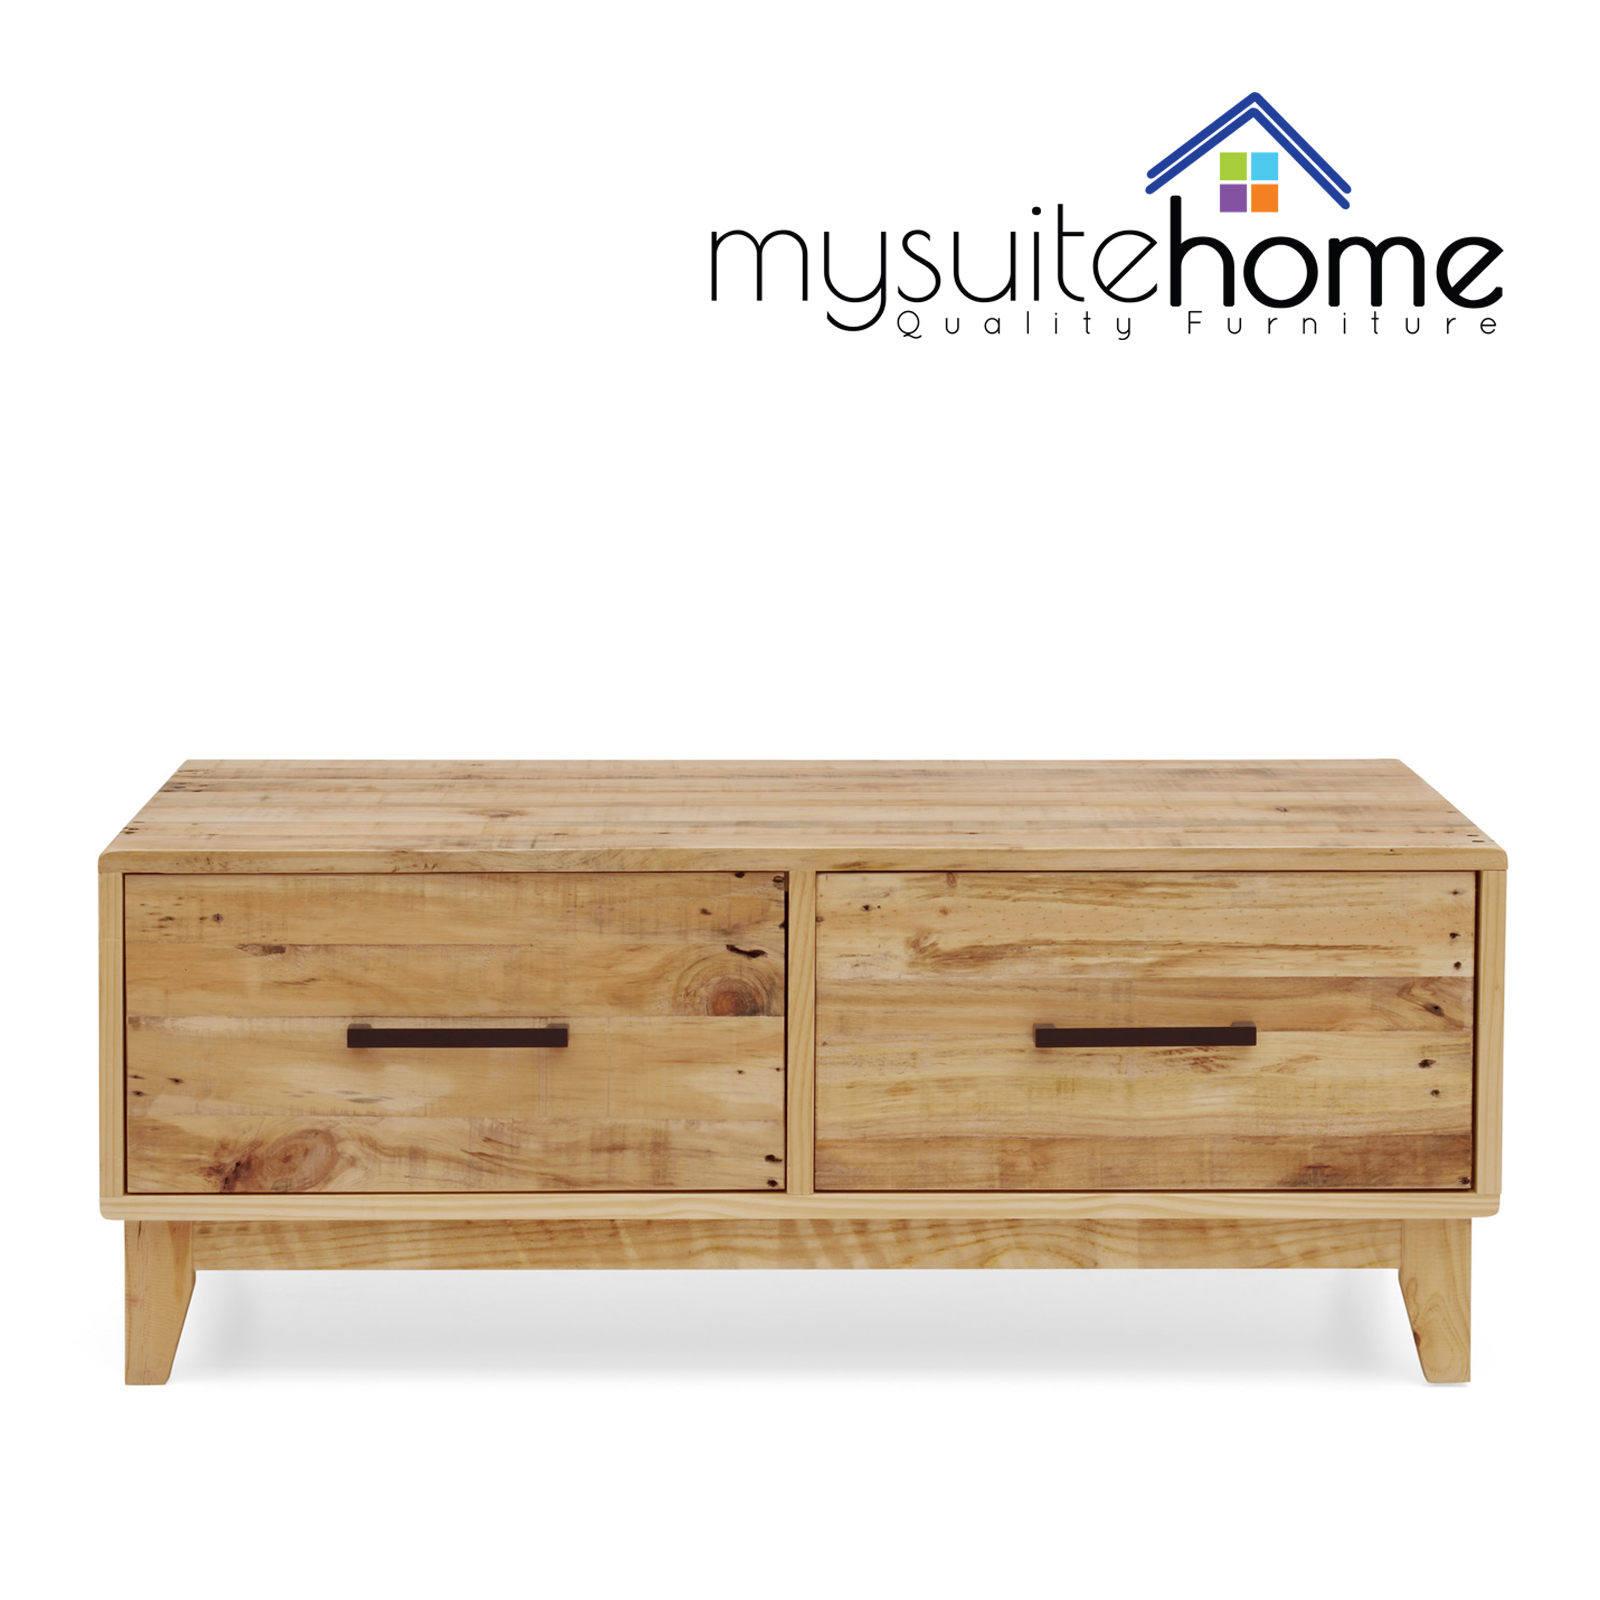 Portland Brand New Recycled Solid Pine Timber Coffee Table Storage Cabinet Unit Aud